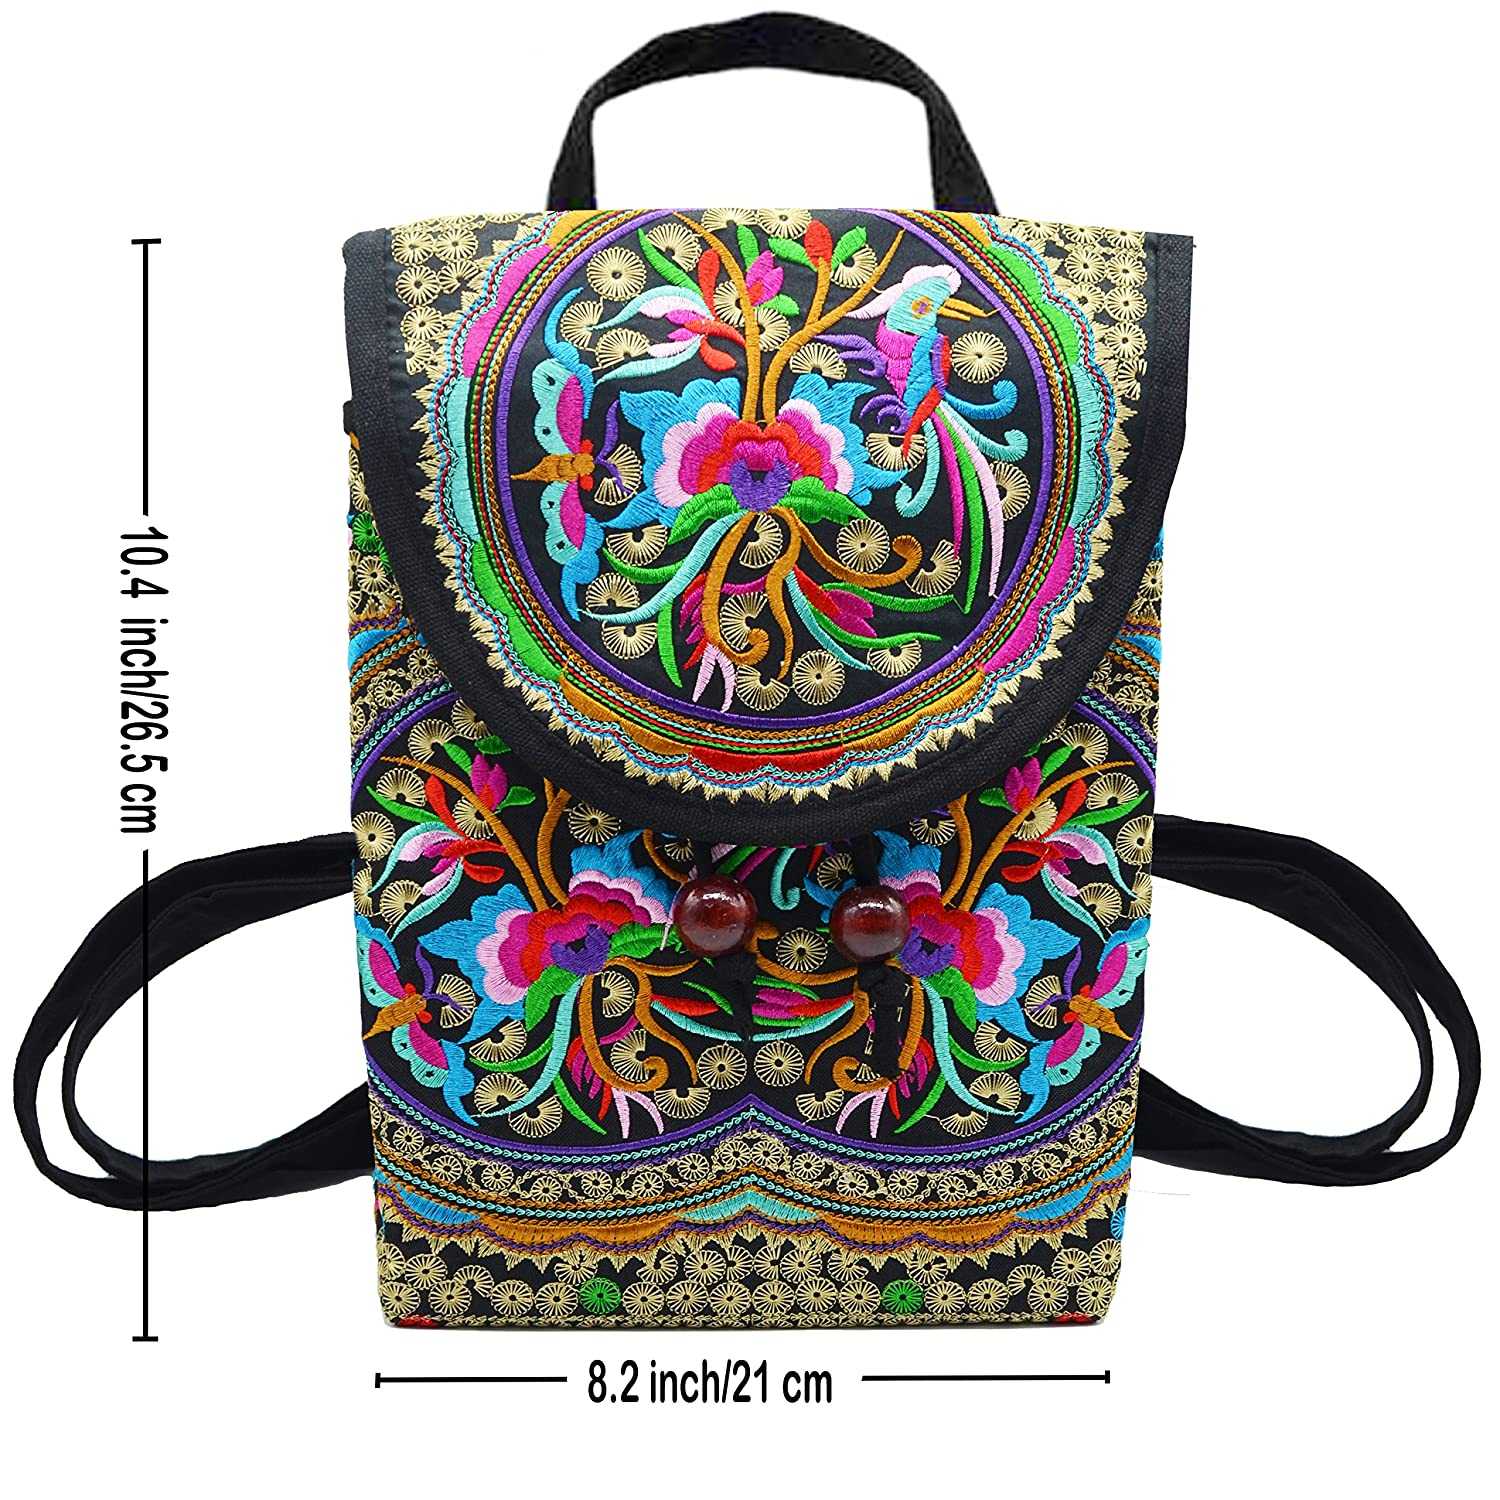 82f7b6a490 Amazon.com: MAYMII Women Handmade Flower Embroidered Bag Canvas National  Trend Embroidery Ethnic Backpack Travel Bags Schoolbags Mochila: Computers  & ...